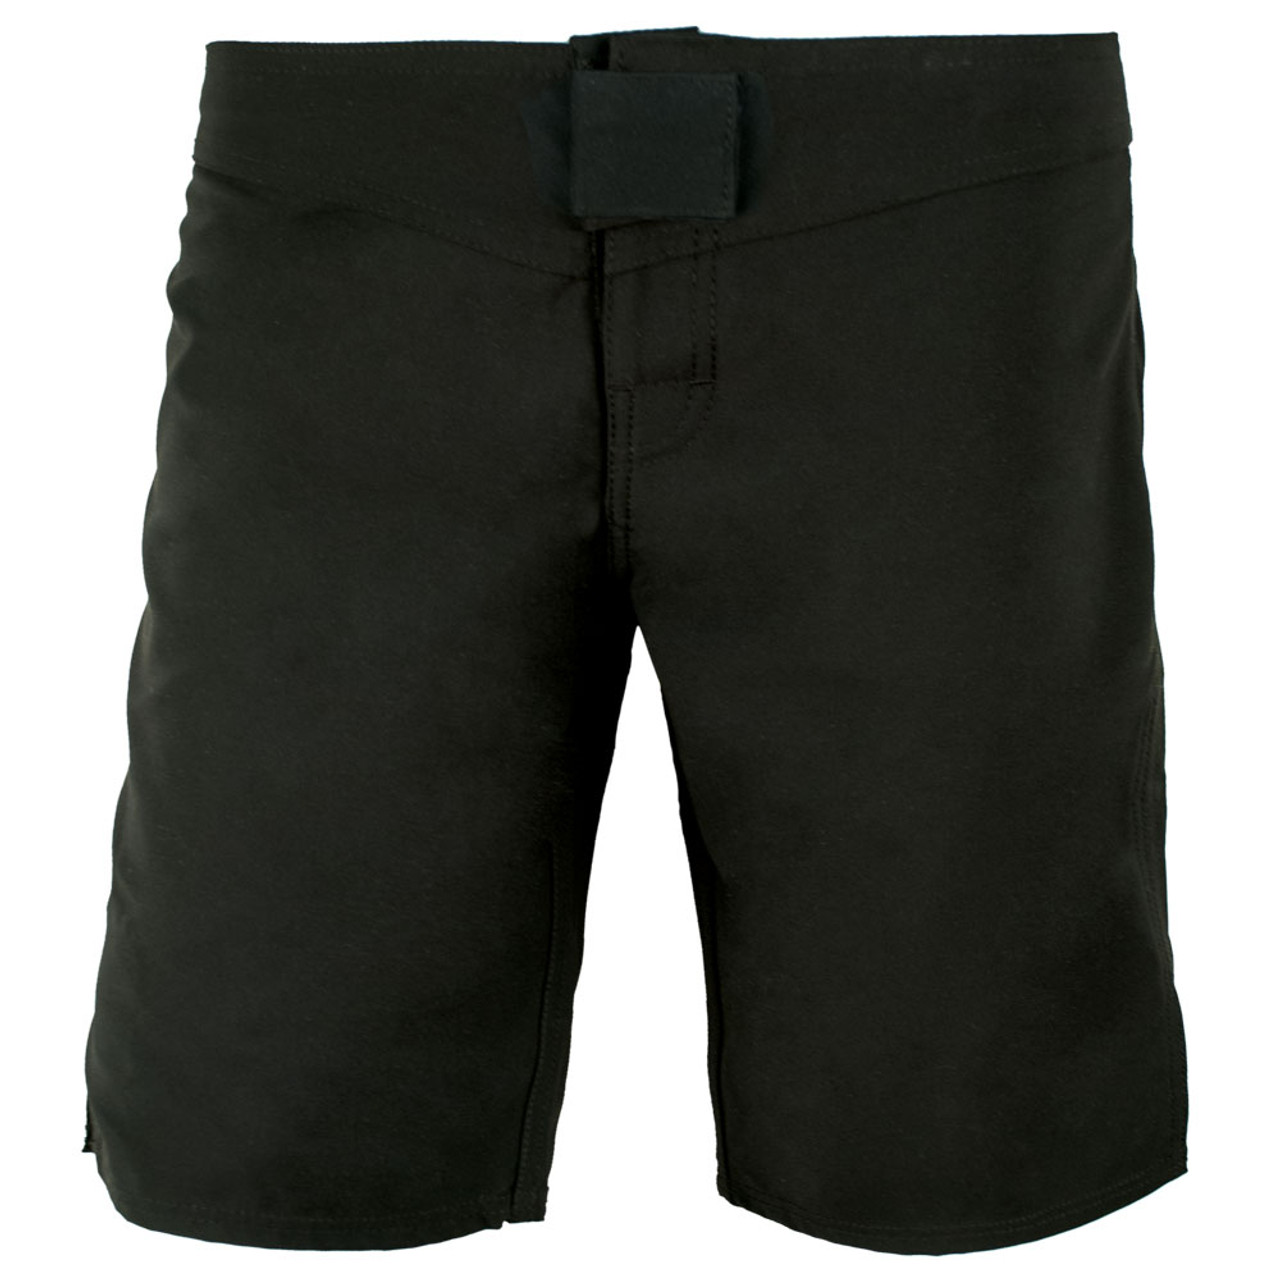 Women's Spartan Short